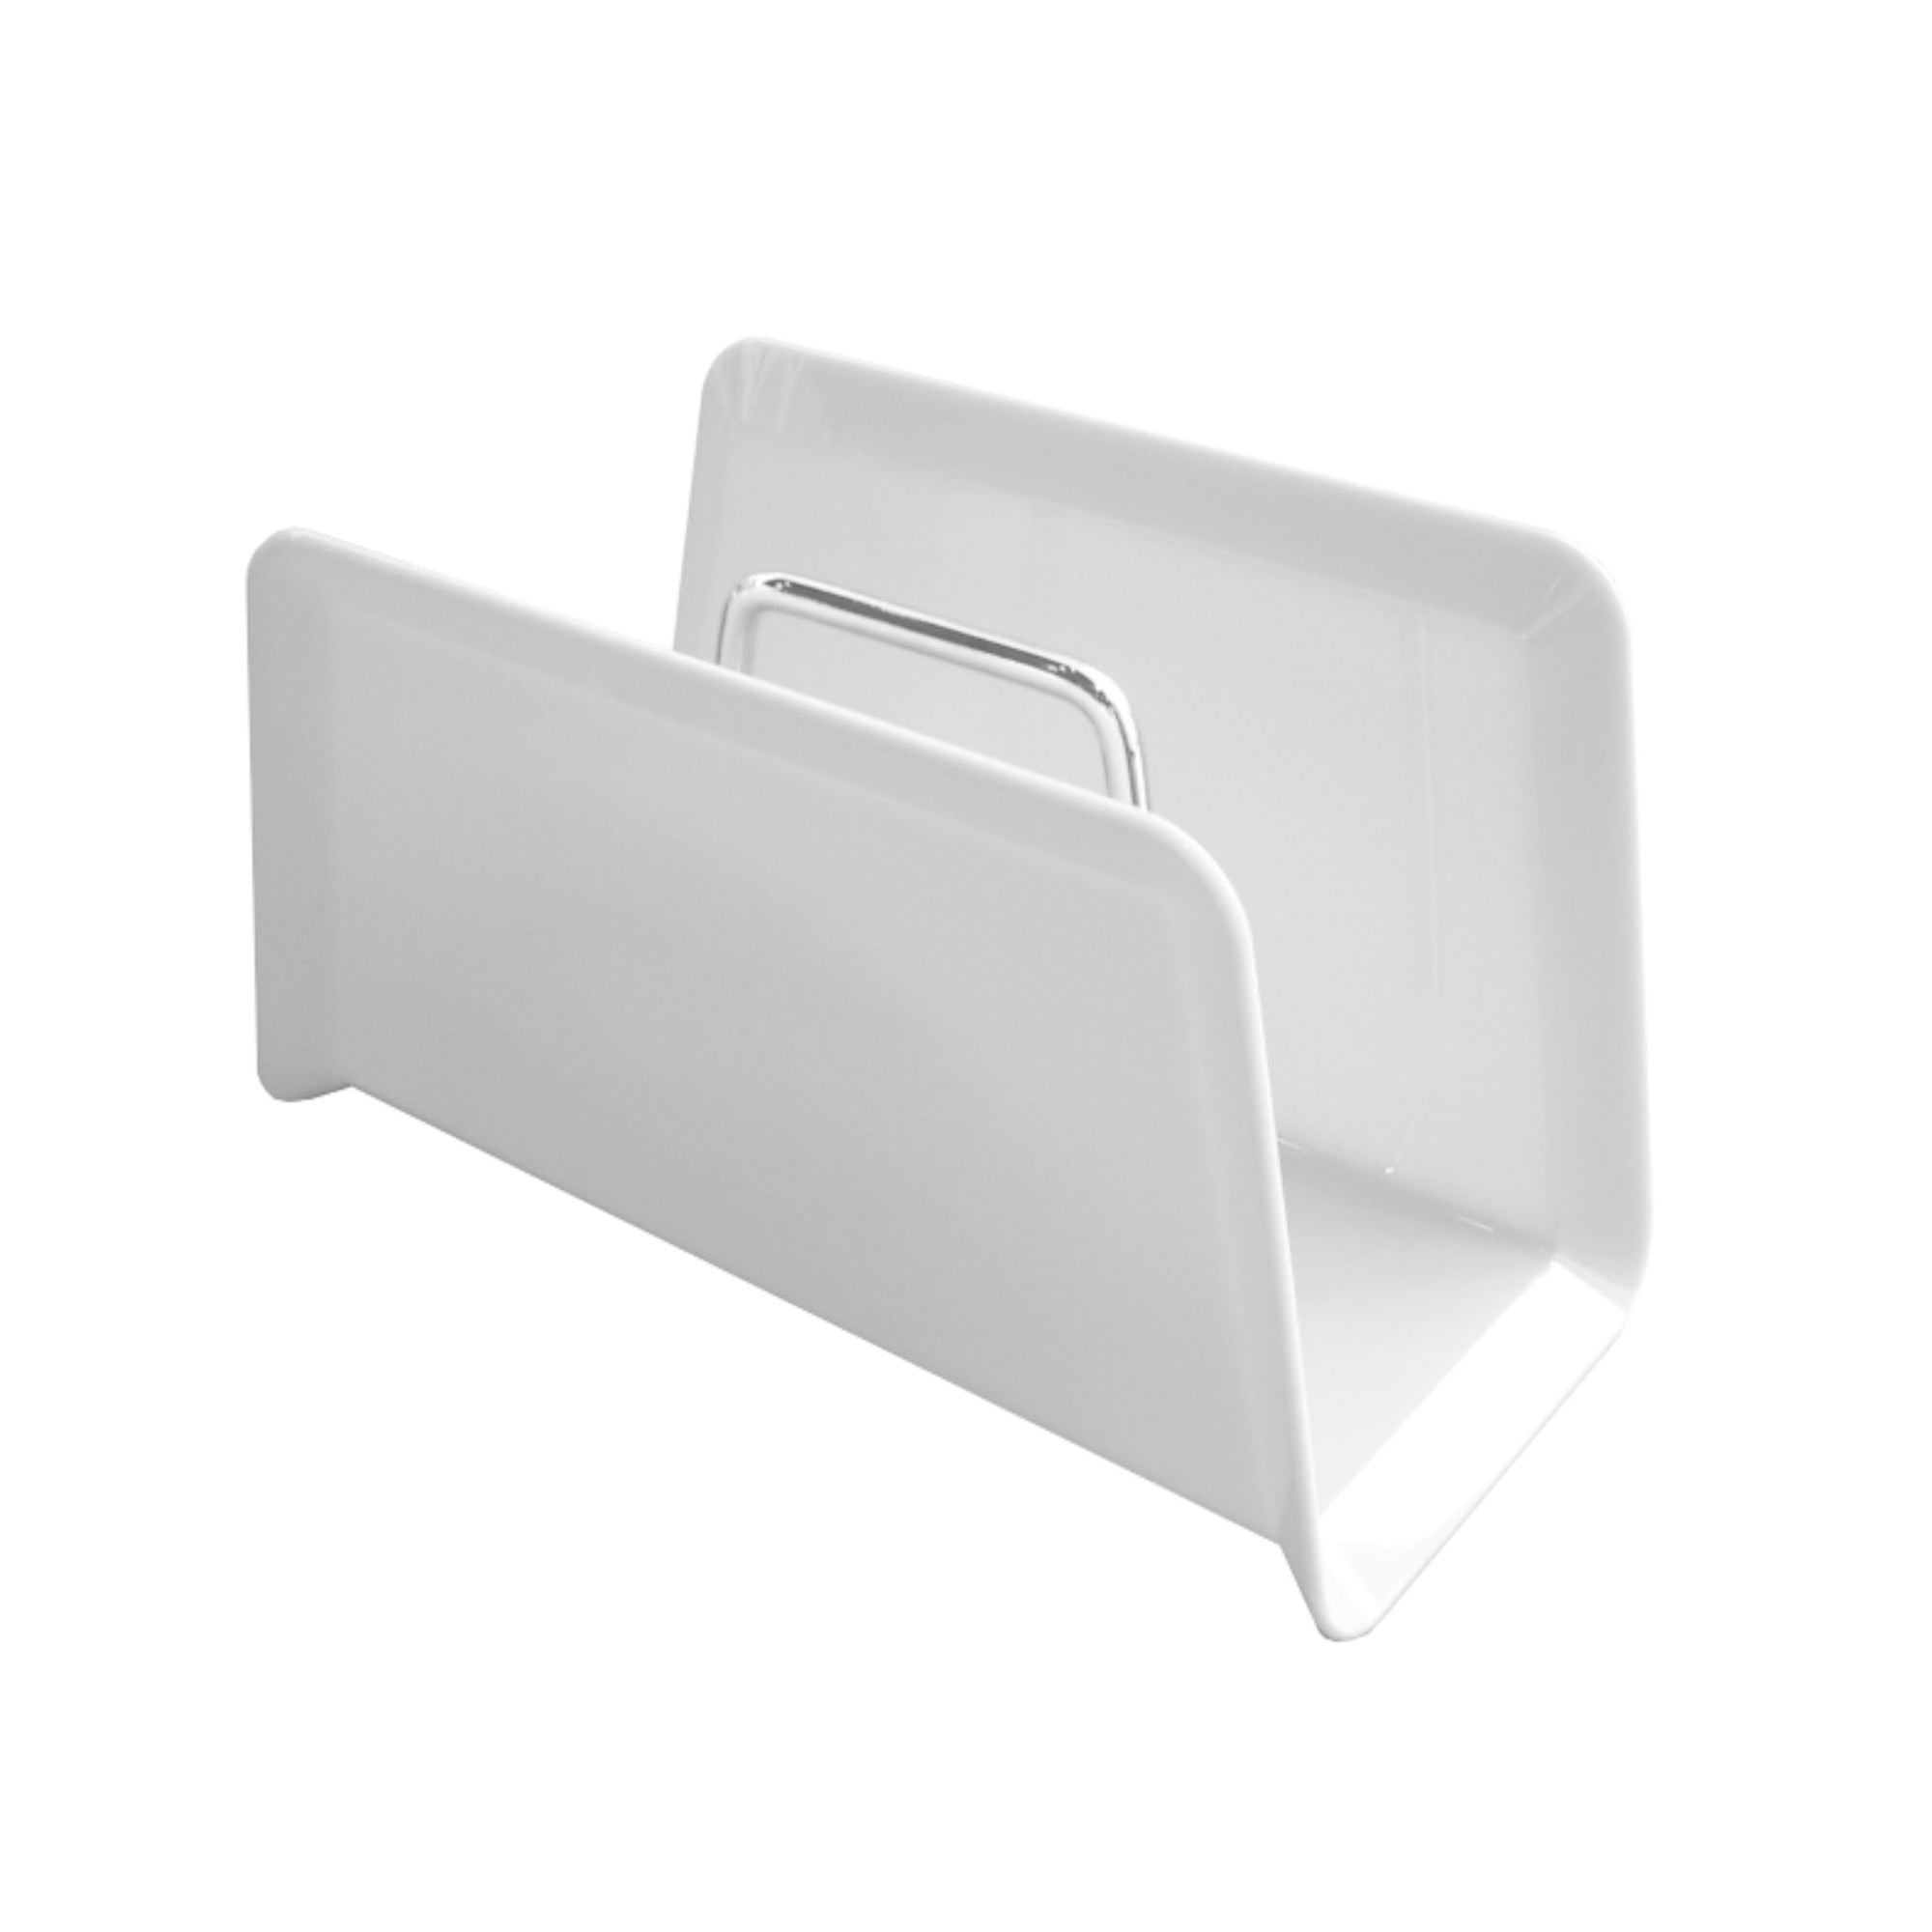 Studio Domo Maggy magazine rack, white